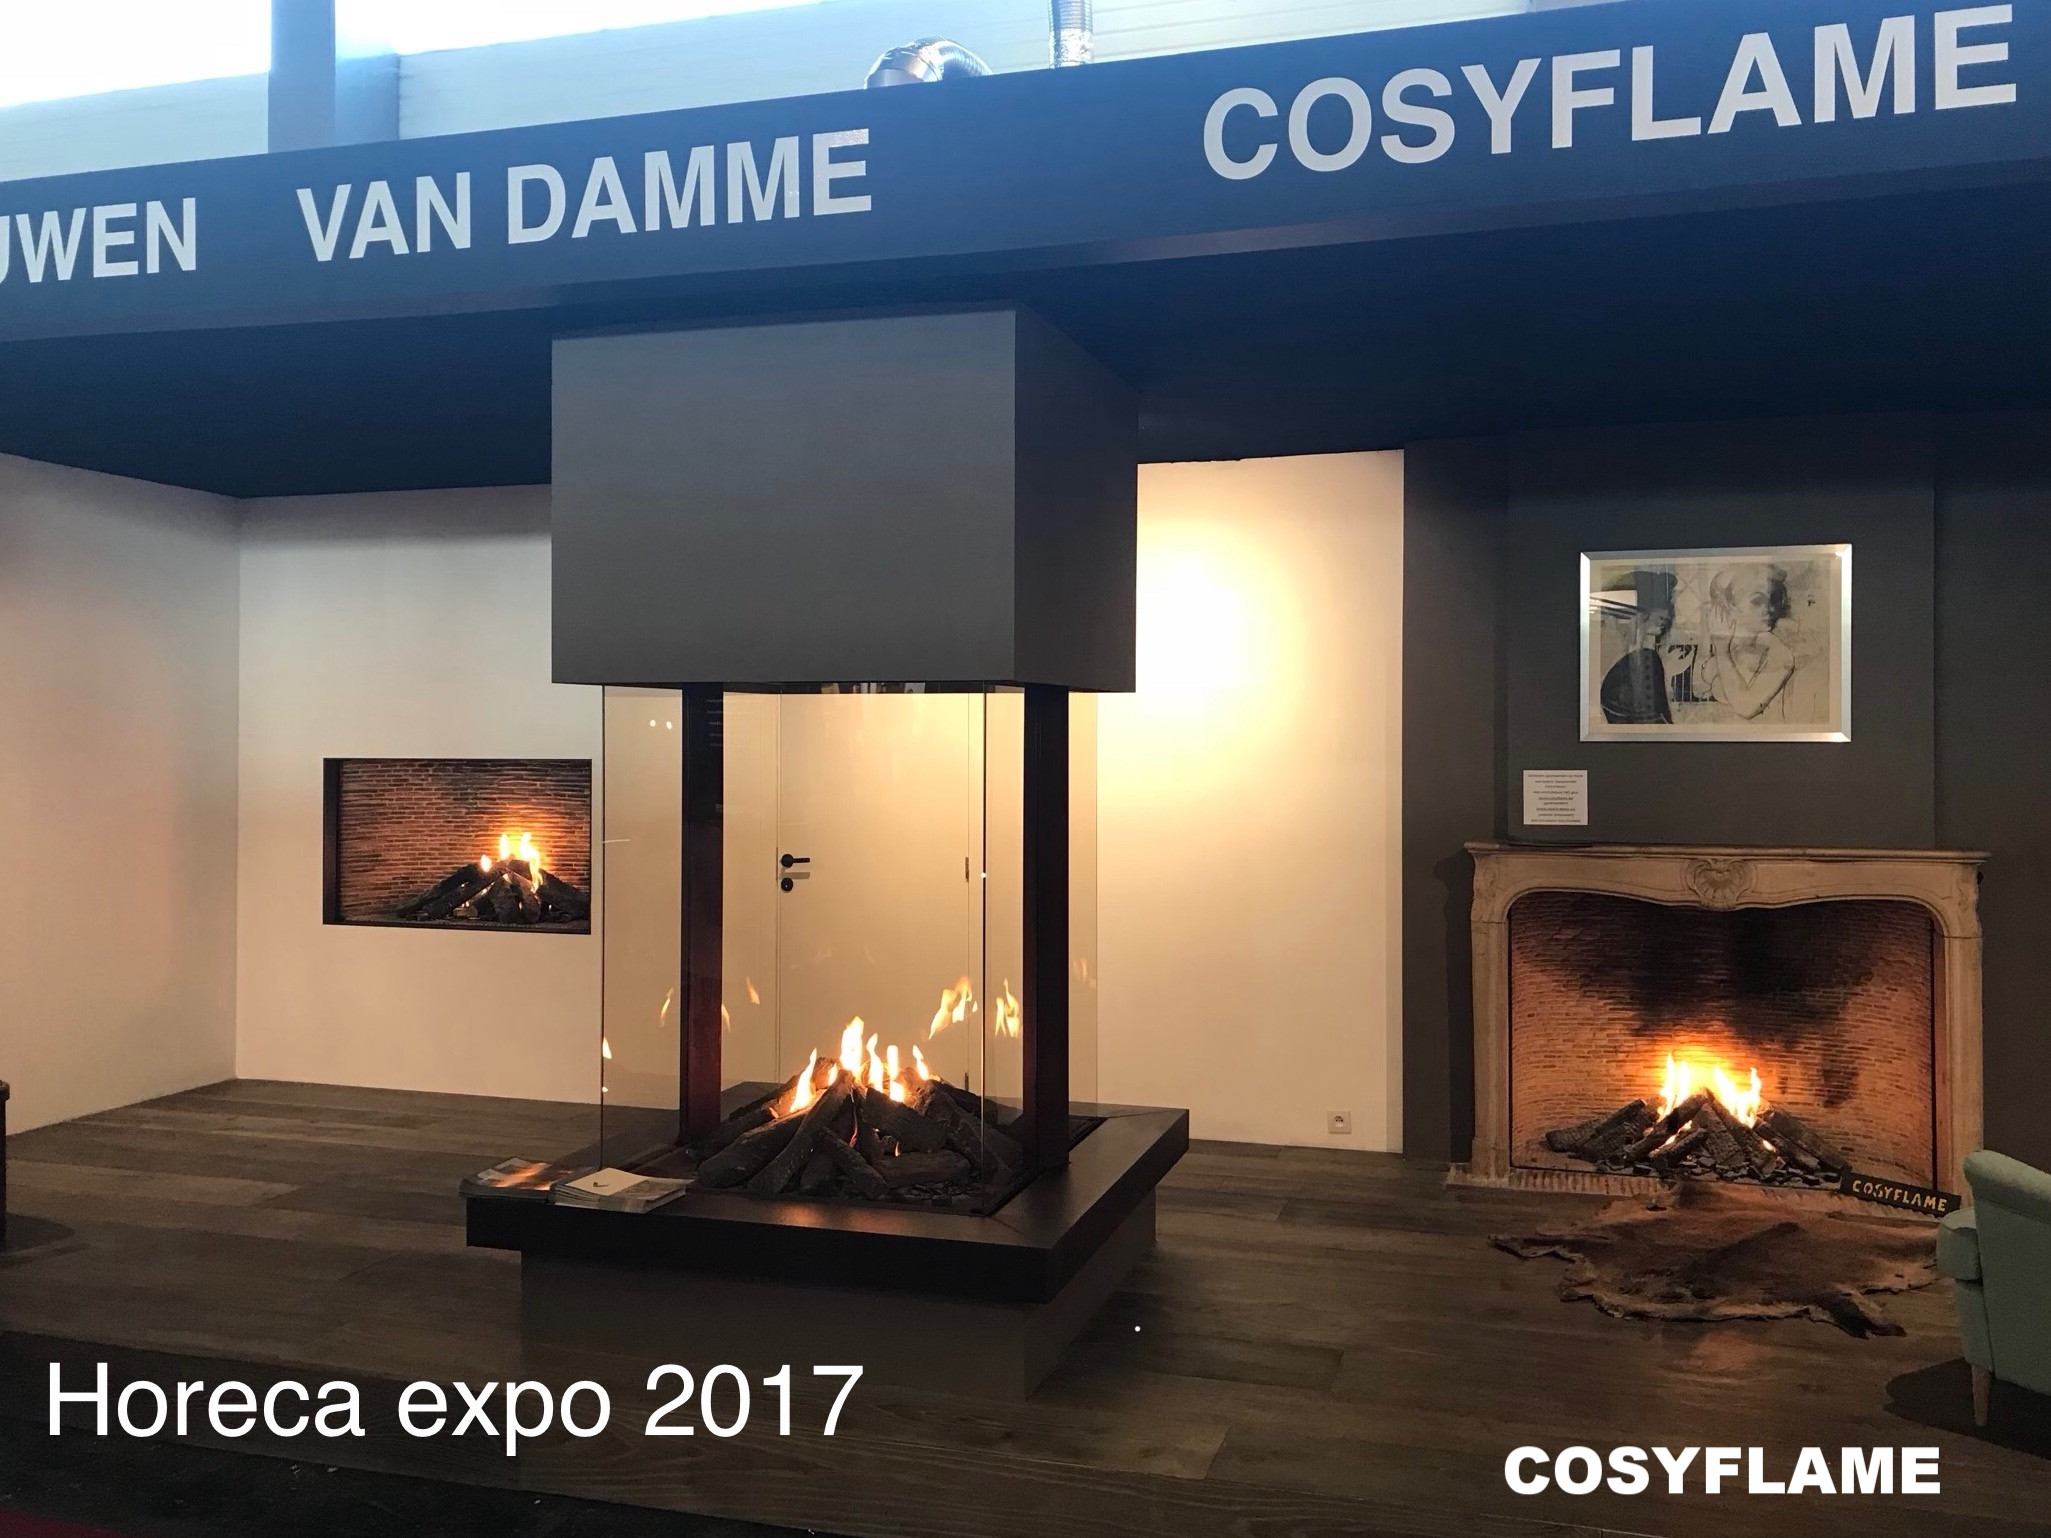 Cosyflame-Beurzen-file-61.jpeg